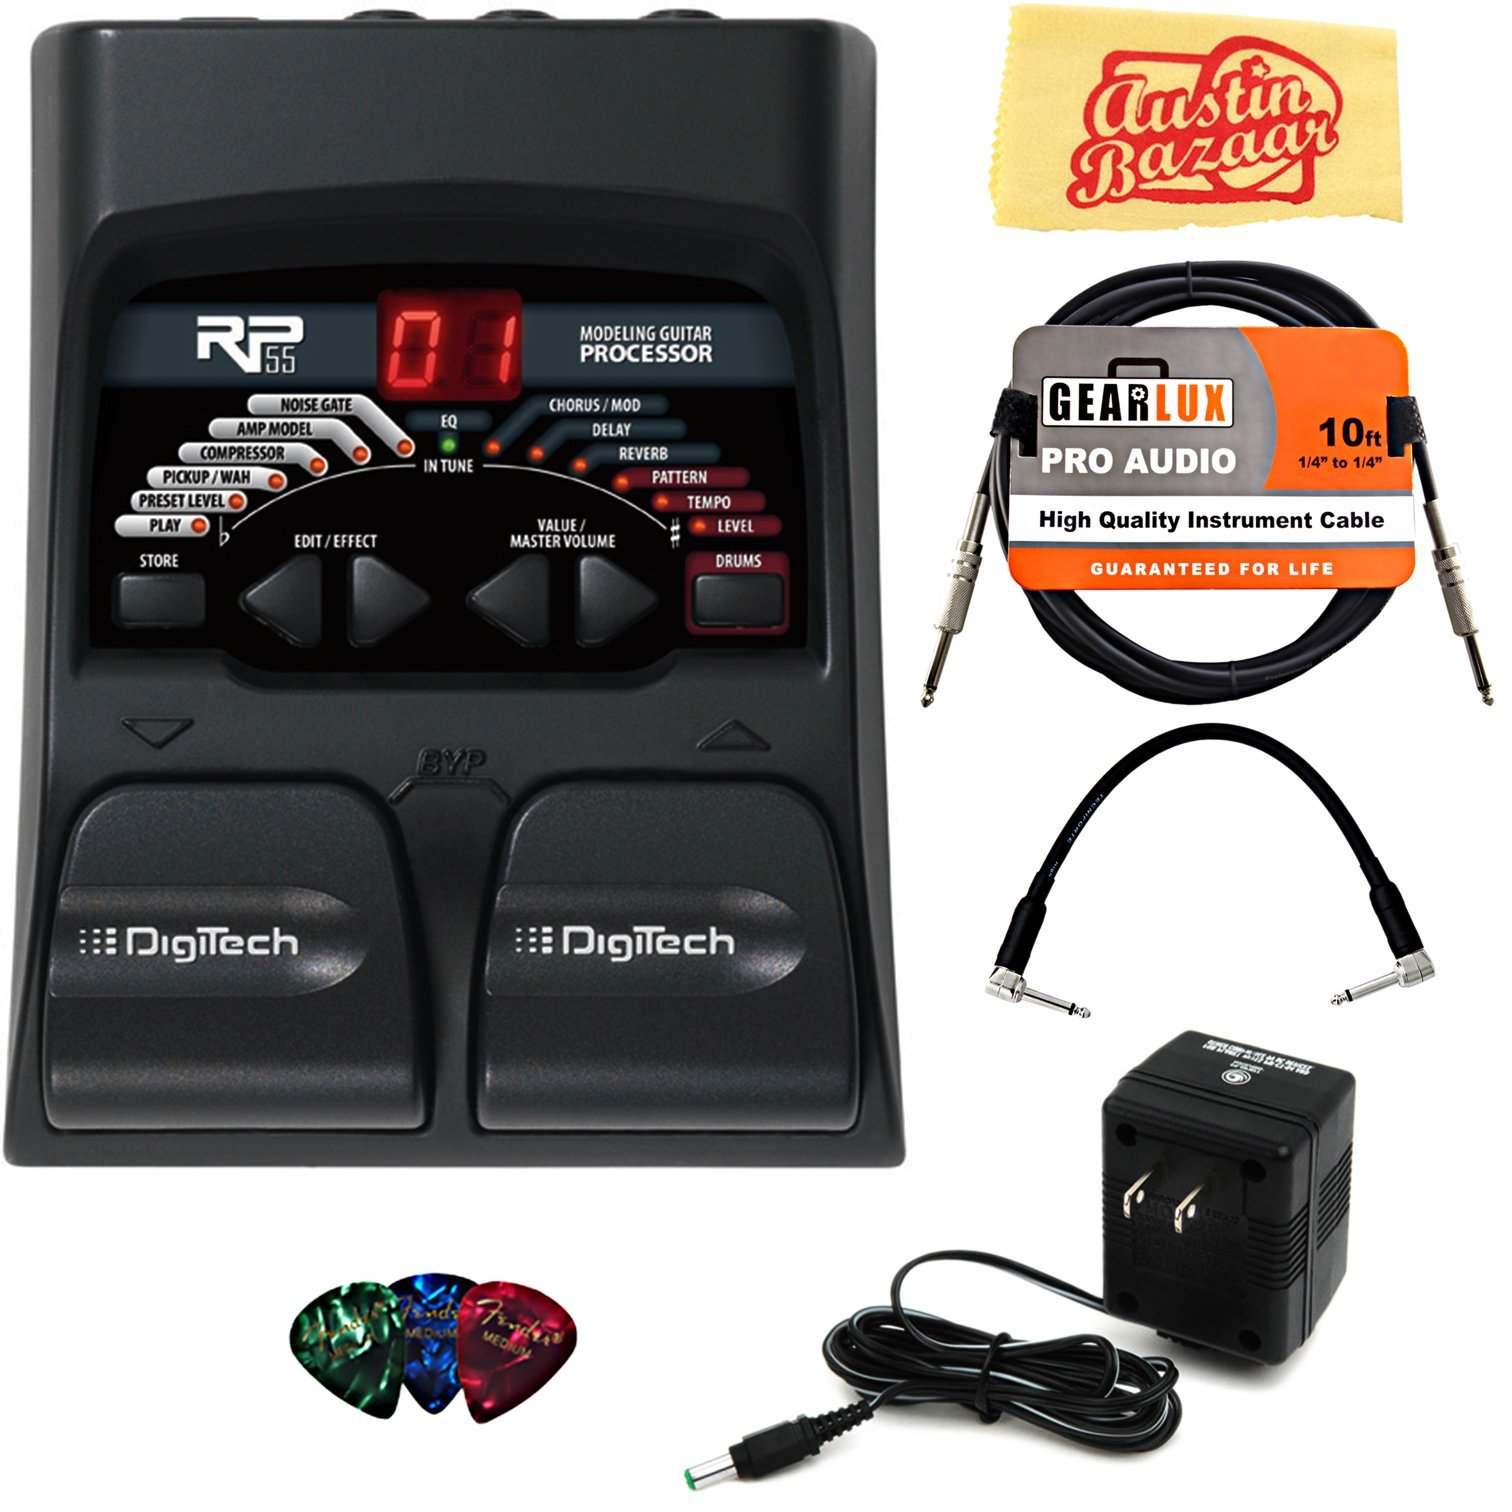 DigiTech RP55 Multi-Effects Pedal Bundle with Power Supply, Instrument Cable, Patch Cable, Picks, and Austin Bazaar Polishing Cloth by DigiTech